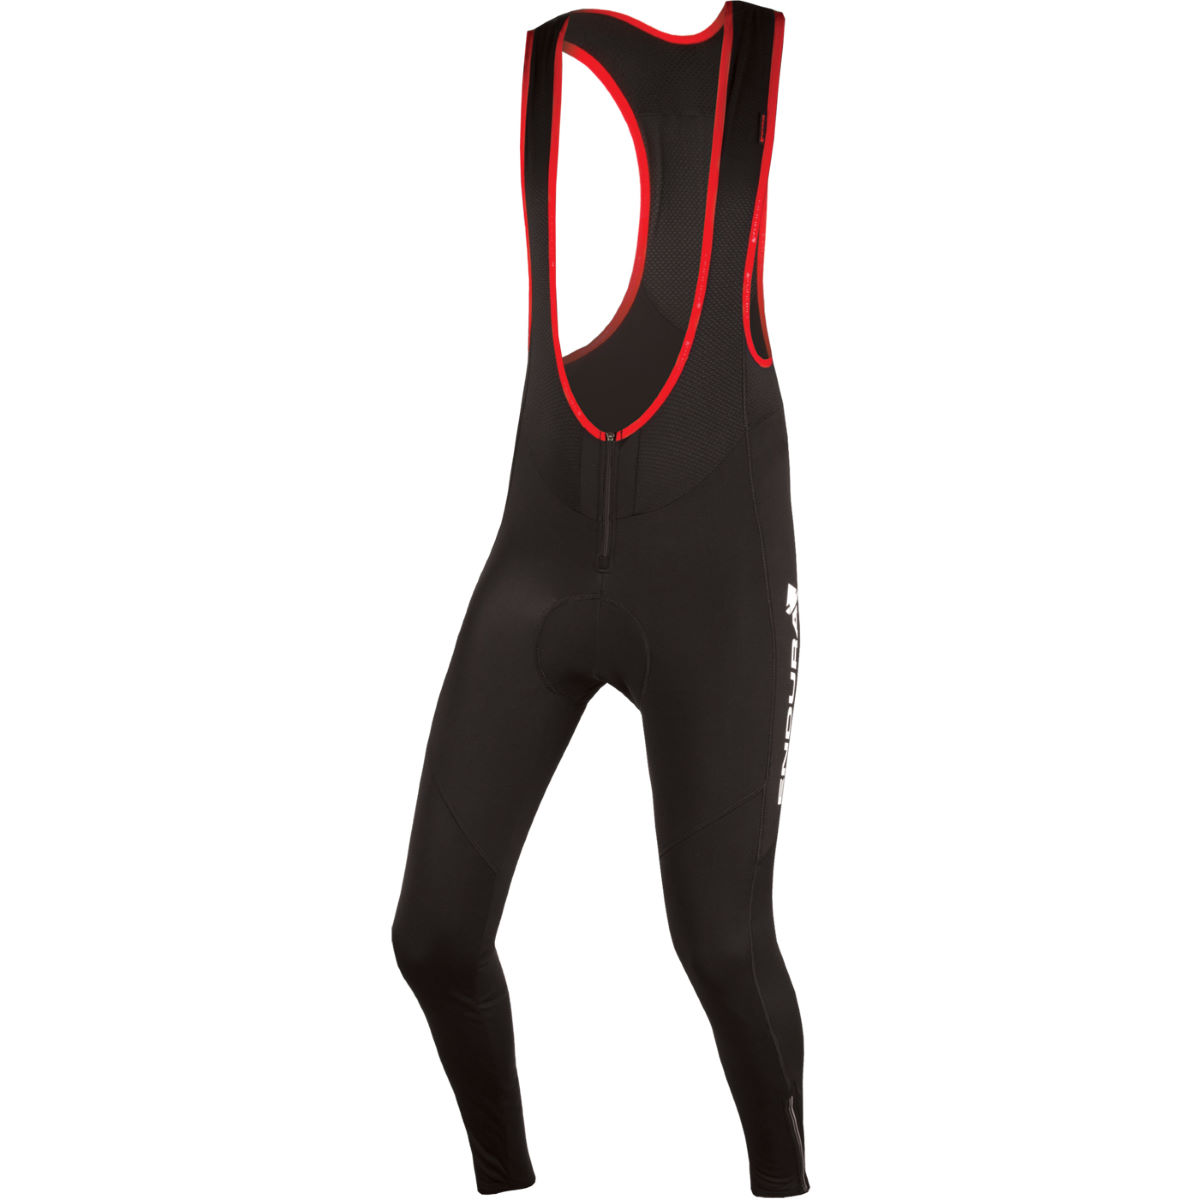 Cuissard long Endura Thermolite® Pro - XXL Noir Cuissards longs de vélo